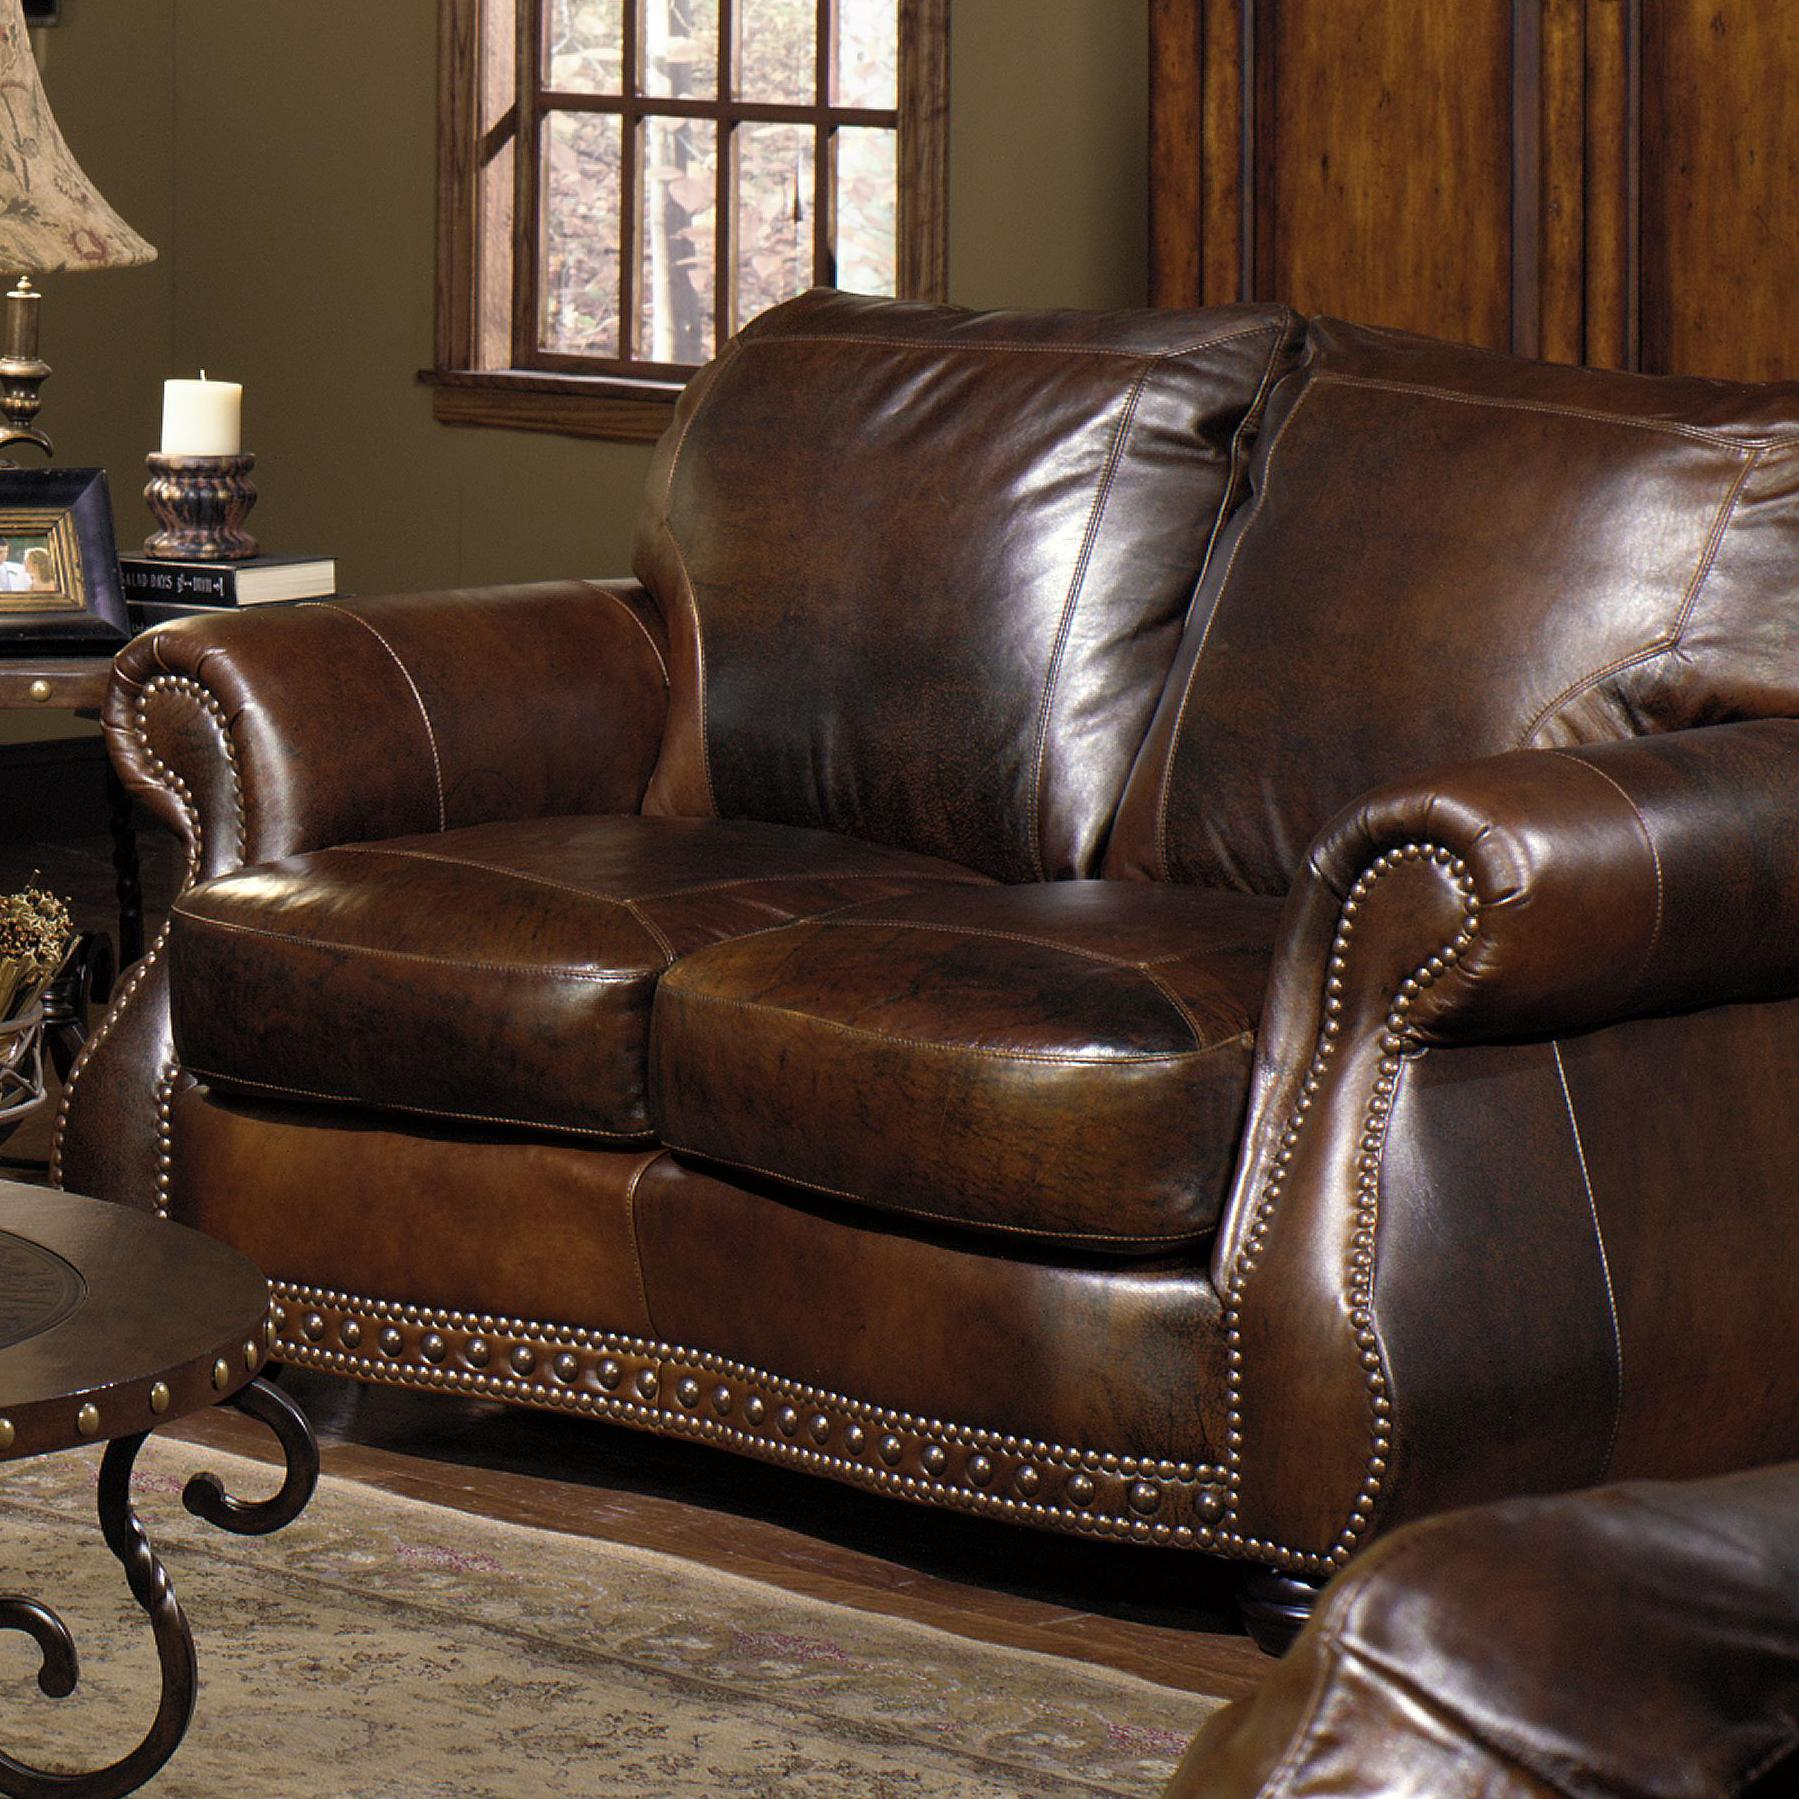 Brown Real Leather Couch 8755 Loveseat W Nail Head Trimming By Usa Premium Leather At Miskelly Furniture